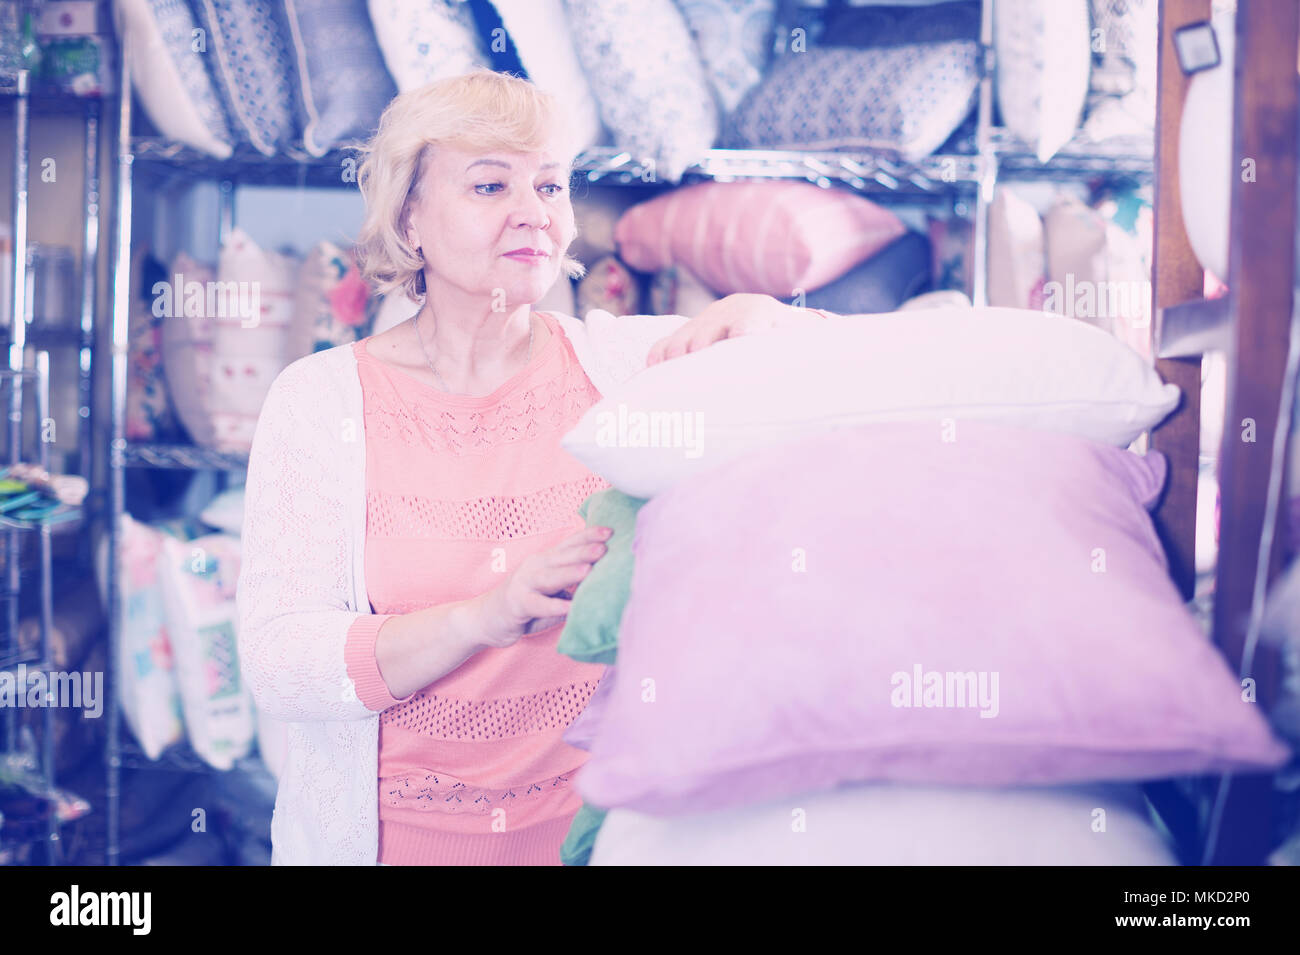 mature woman purchaser holding soft pillows in the textile sho - Stock Image